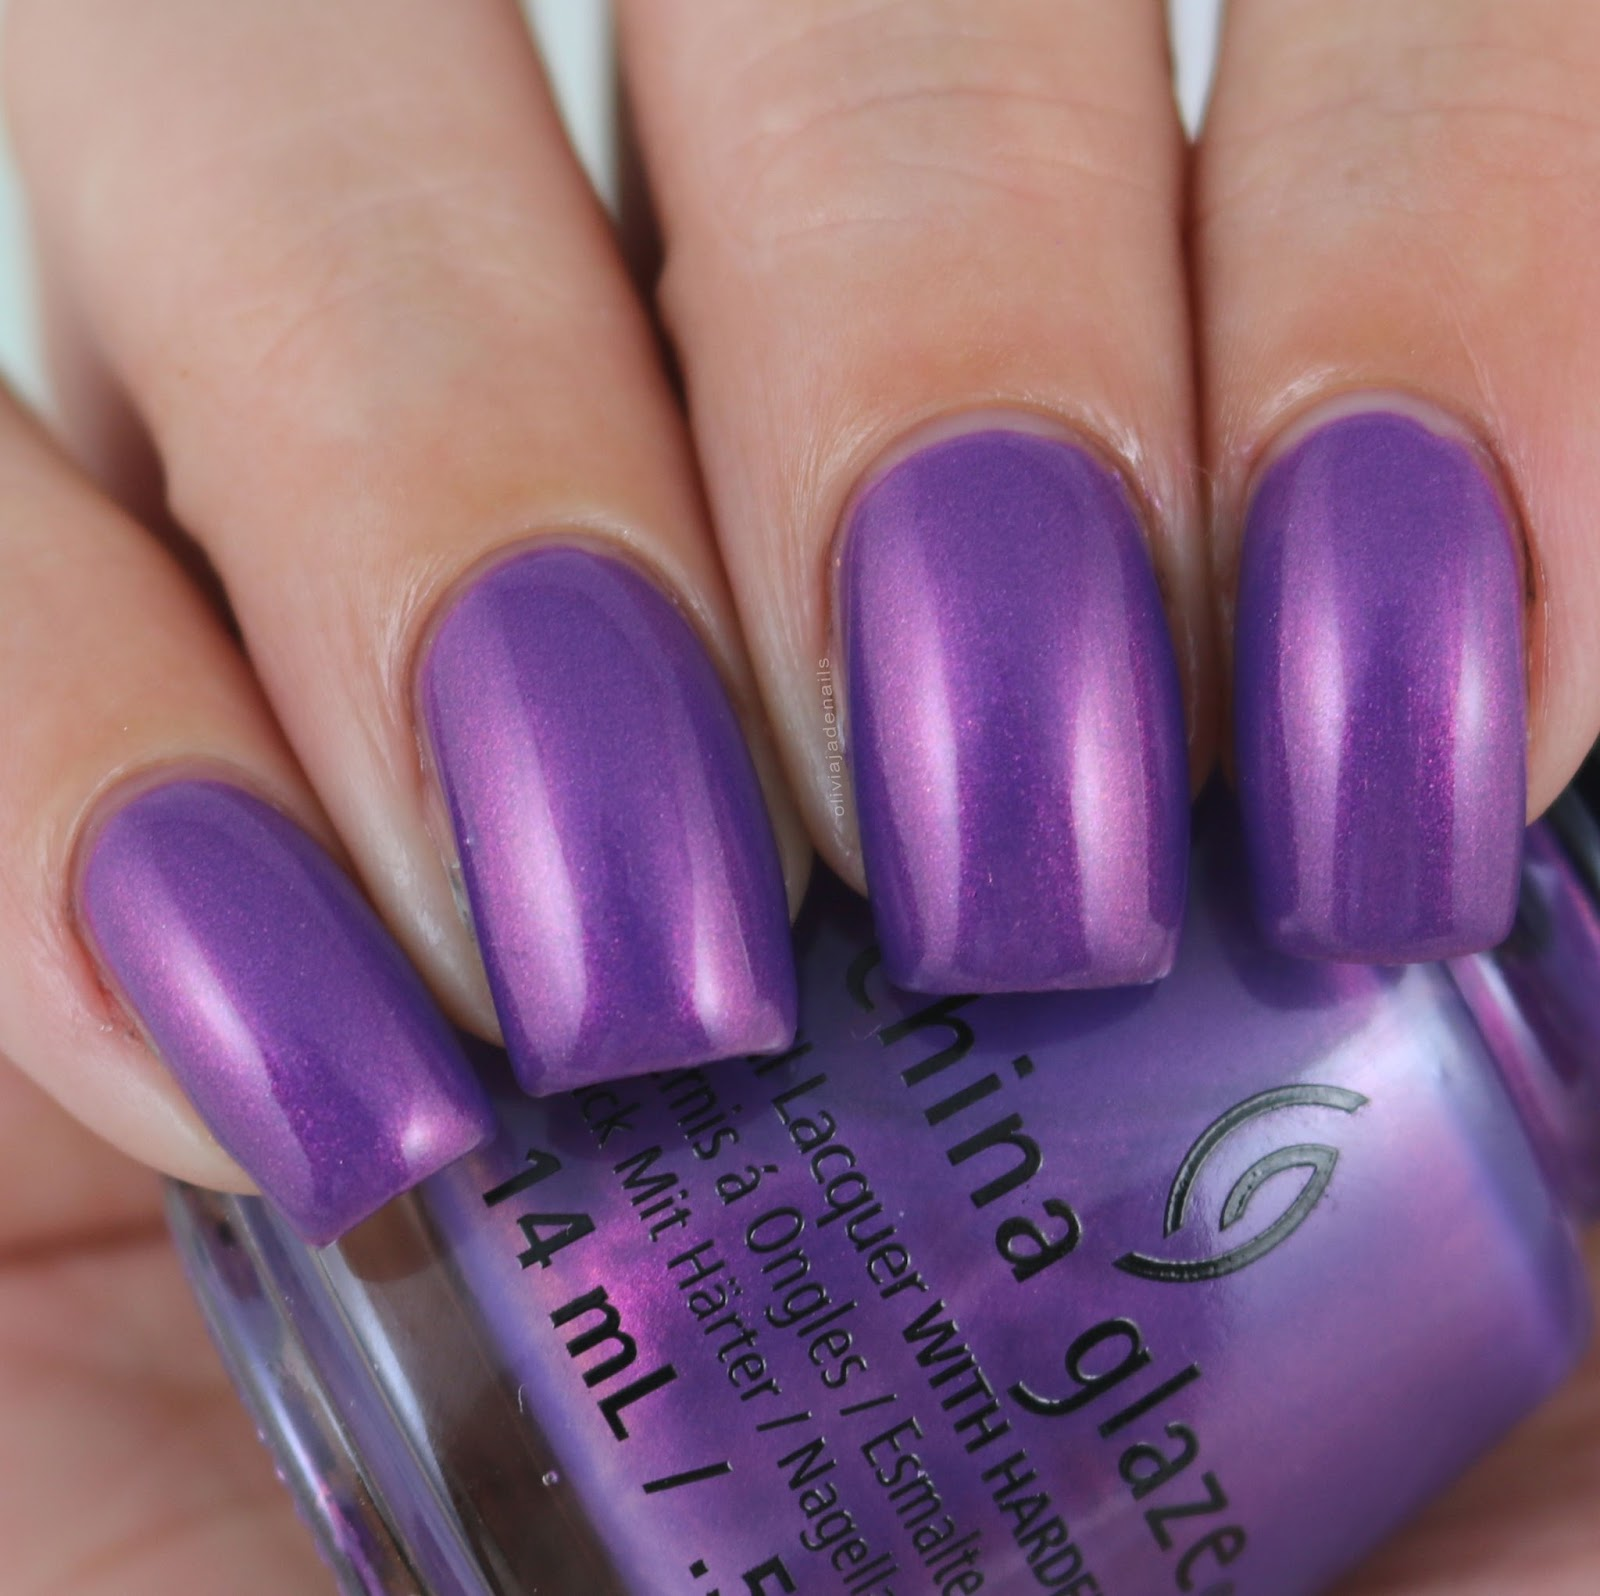 Olivia jade nails china glaze seas and greetings collection picture m4hsunfo